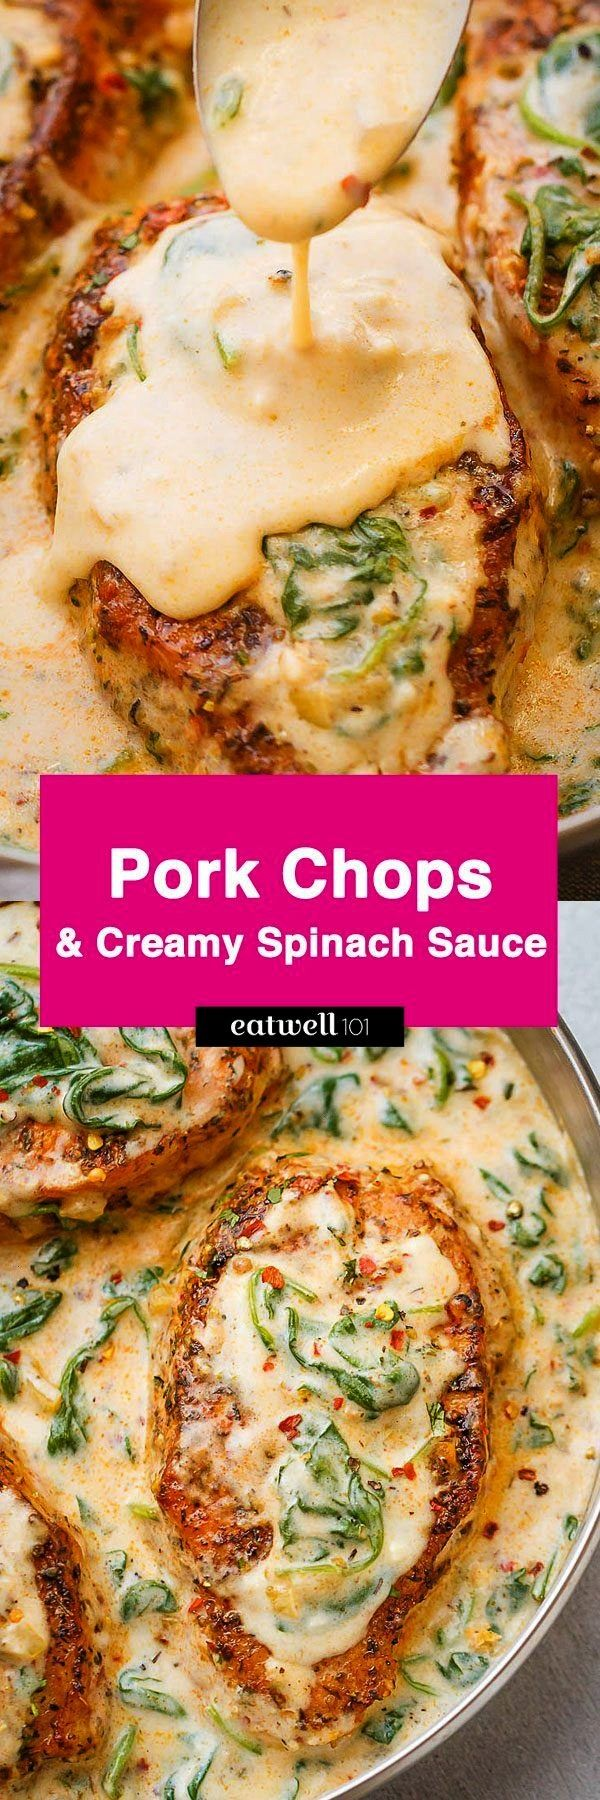 Pork Chops with Garlic Butter Spinach Sauce — Packed with flavor, a perfect meal for all of your